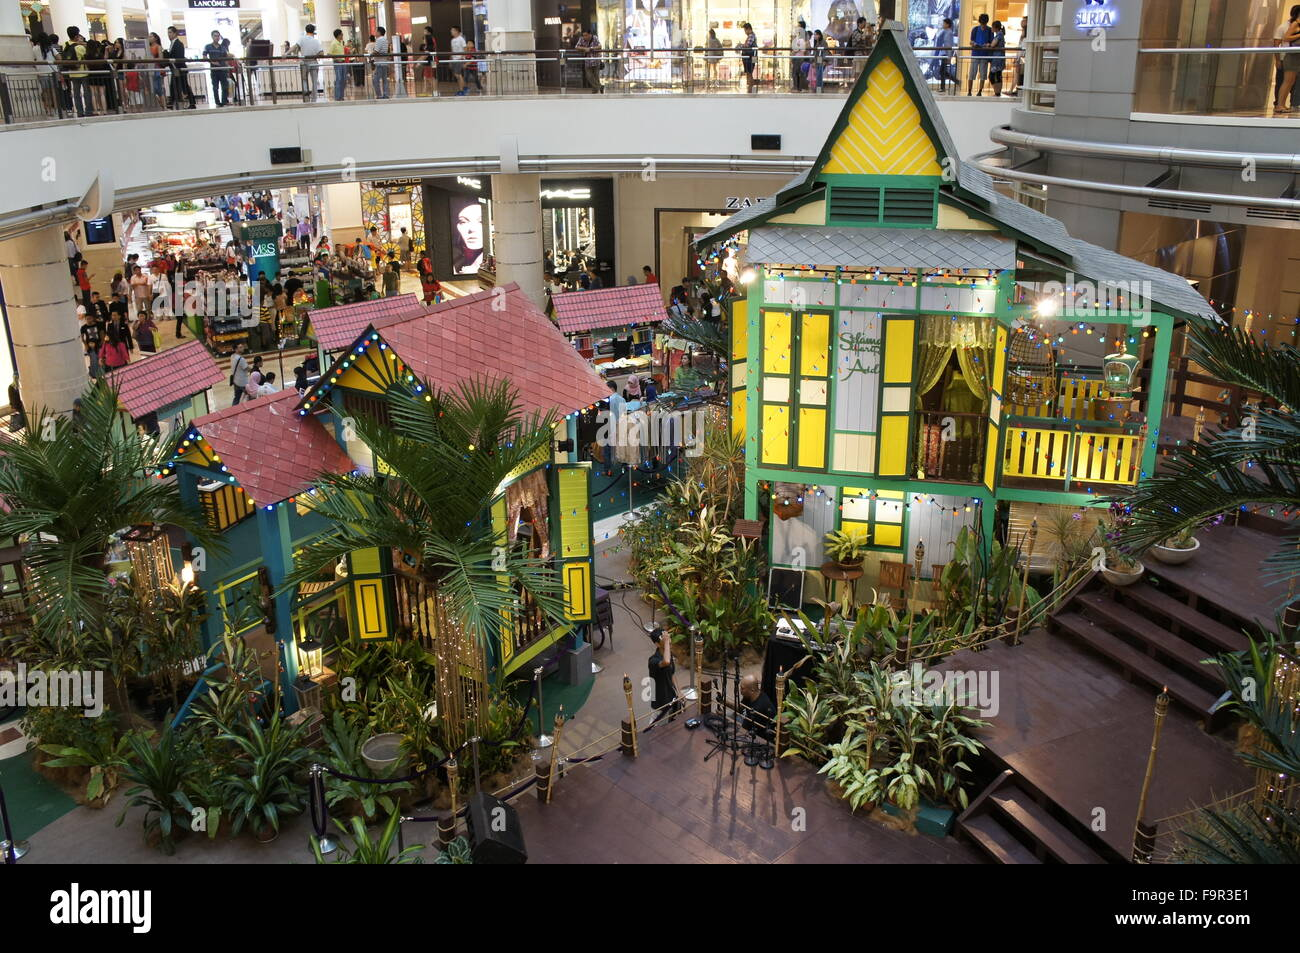 Simple Small House Eid Al-Fitr Decorations - malaysian-shopping-mall-decorated-for-hari-raya-puasa-or-eid-ul-fitr-F9R3E1  Trends_492375 .jpg